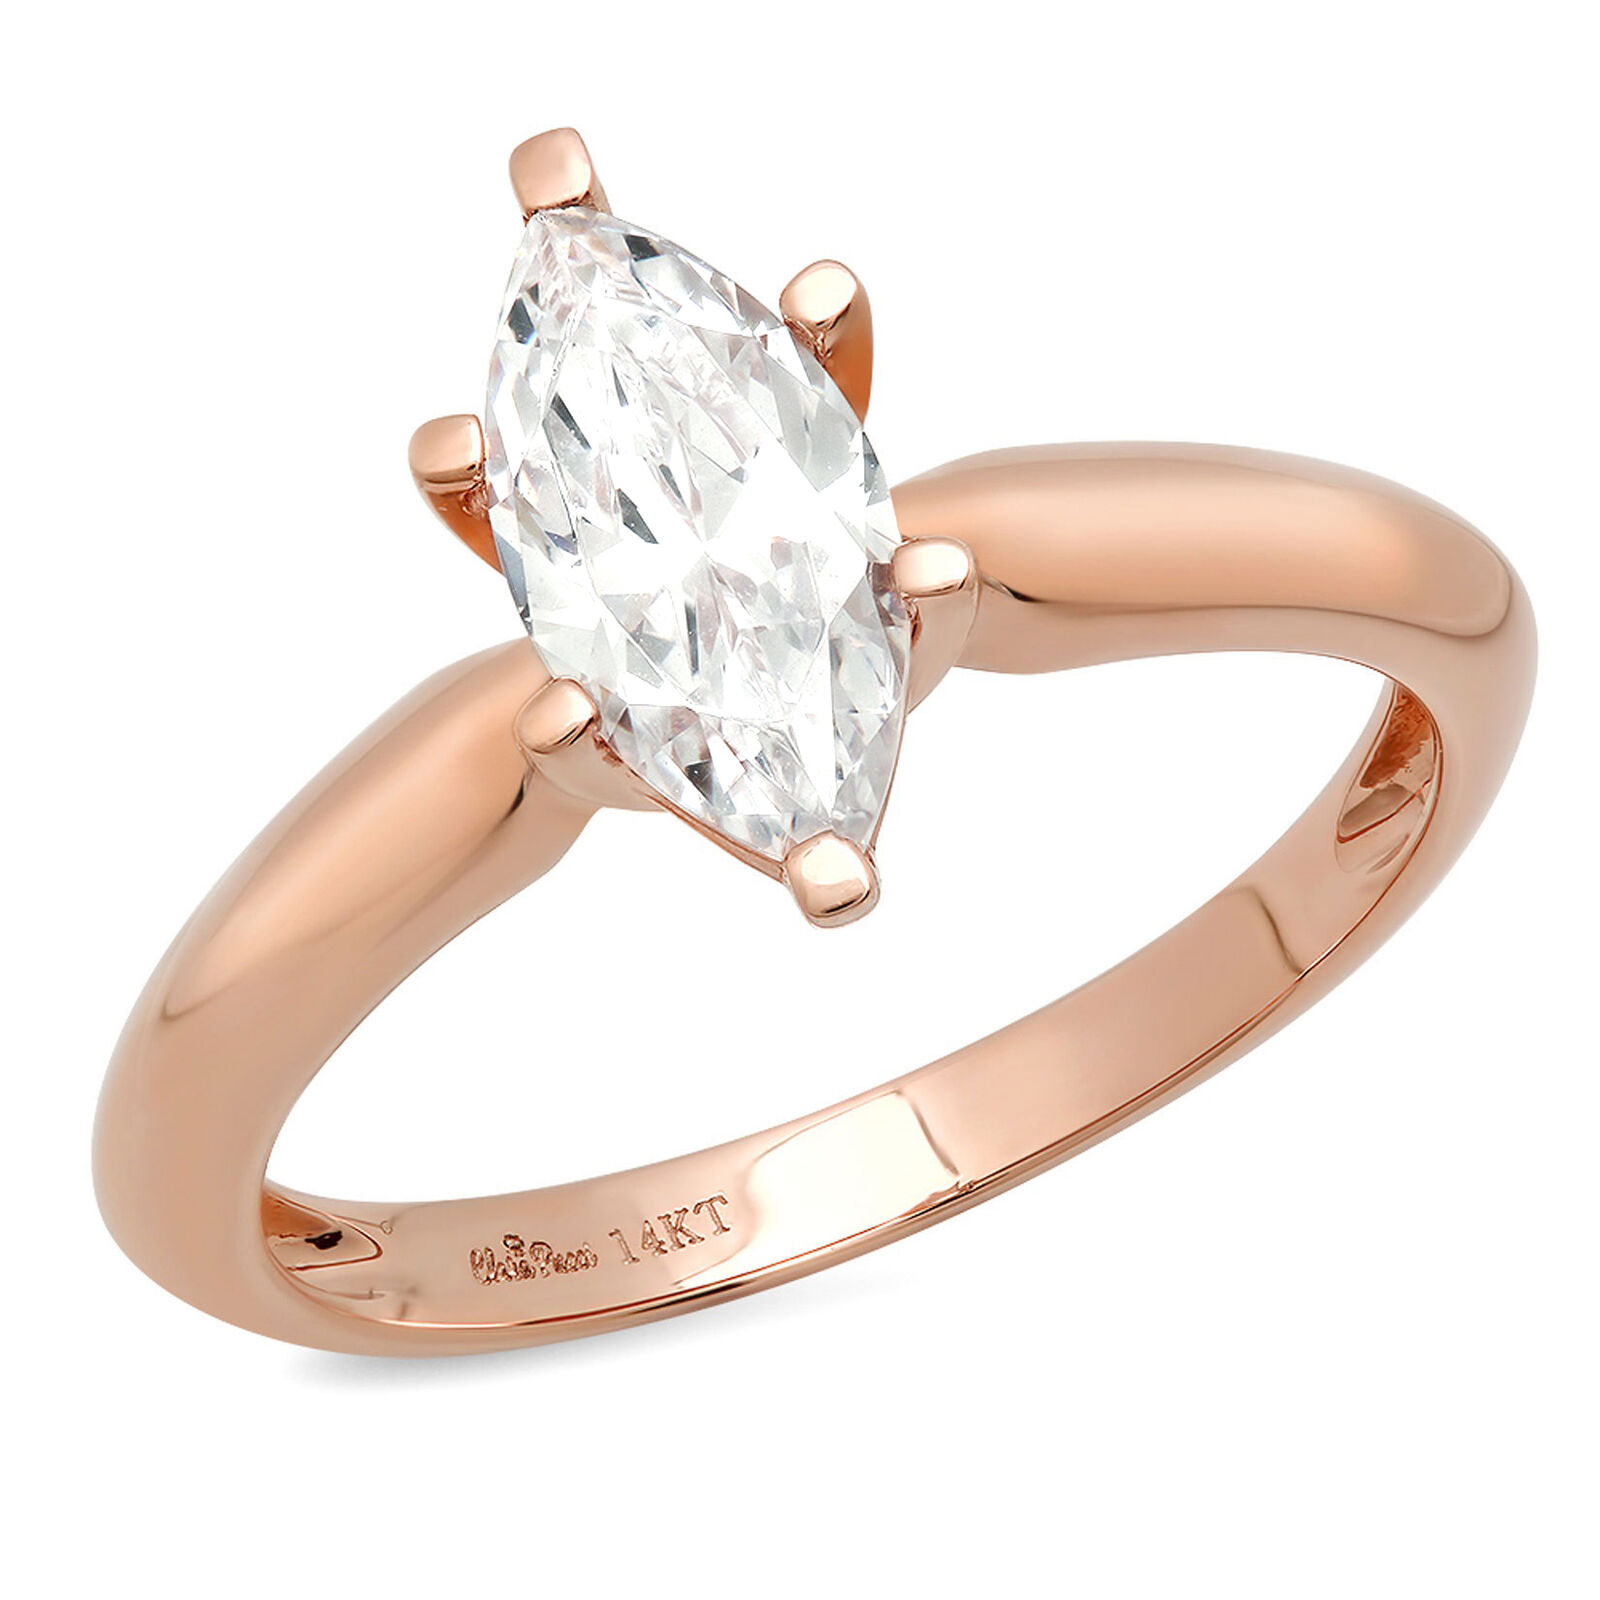 1.6ct Marquise Cut Wedding Bridal Engagement Anniversary Ring 14k pink gold